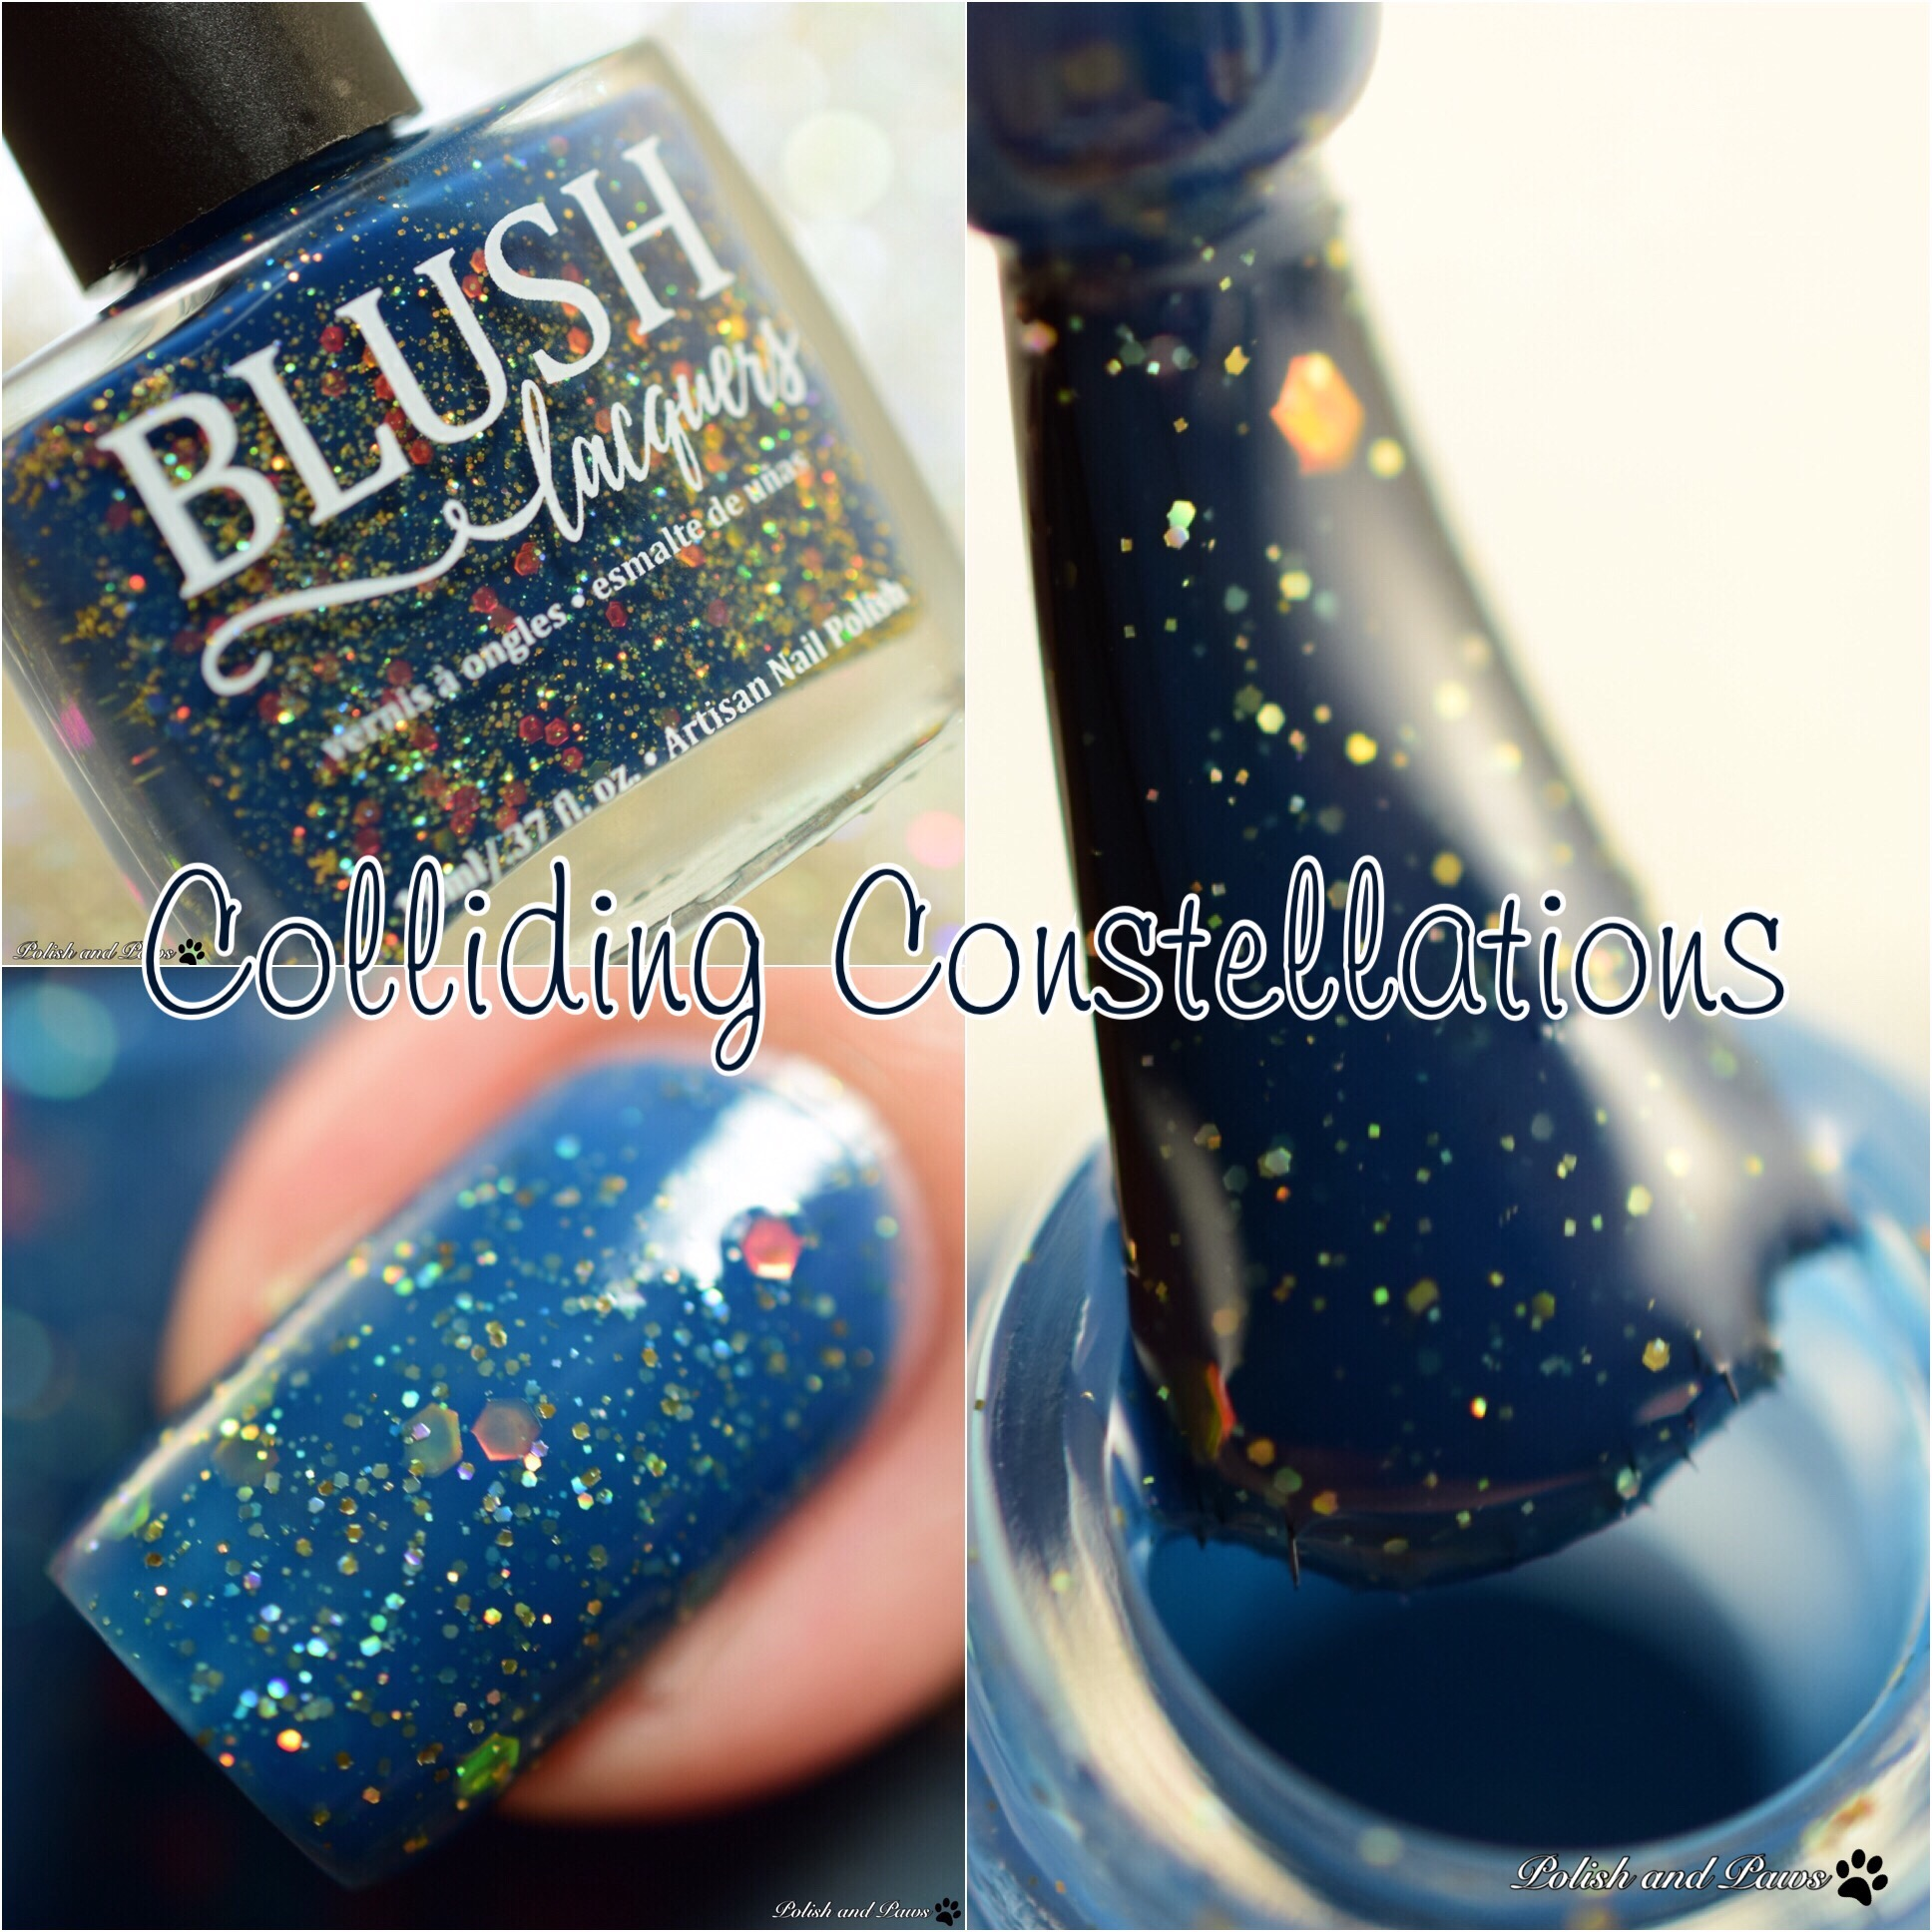 Blush Lacquers Colliding Constellations